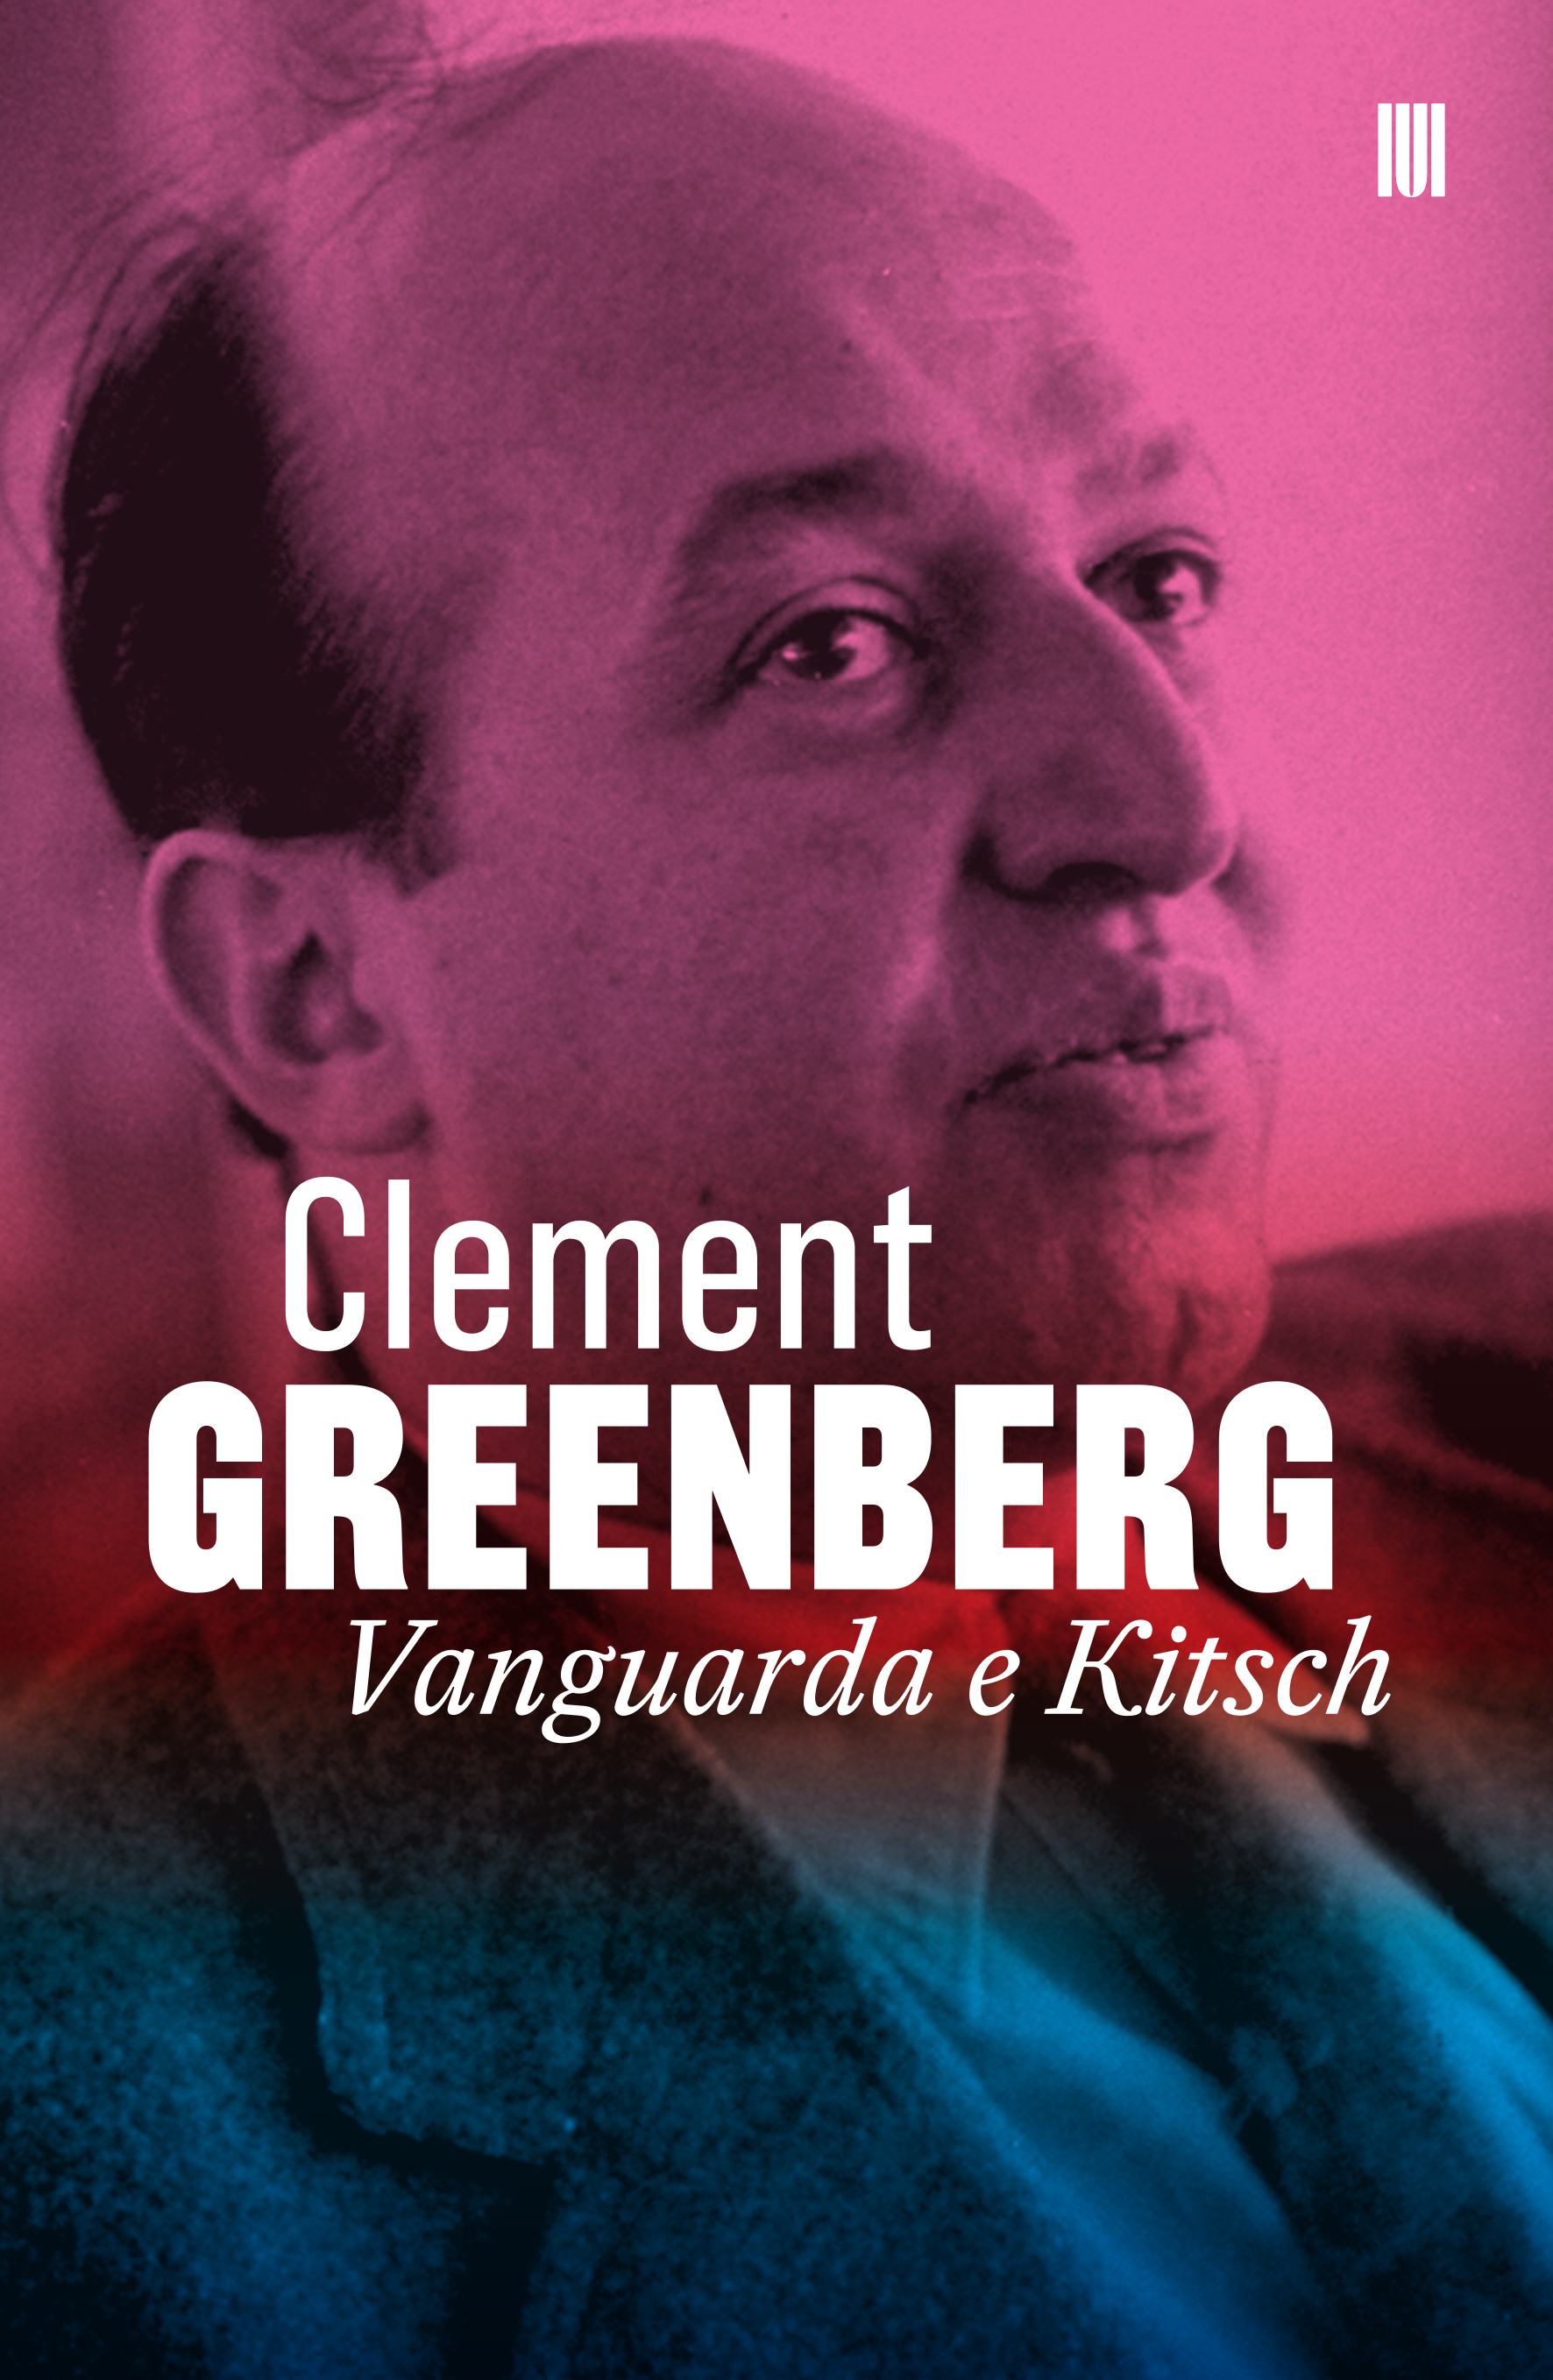 Clement Greenberg - Vanguarda e Kitsch